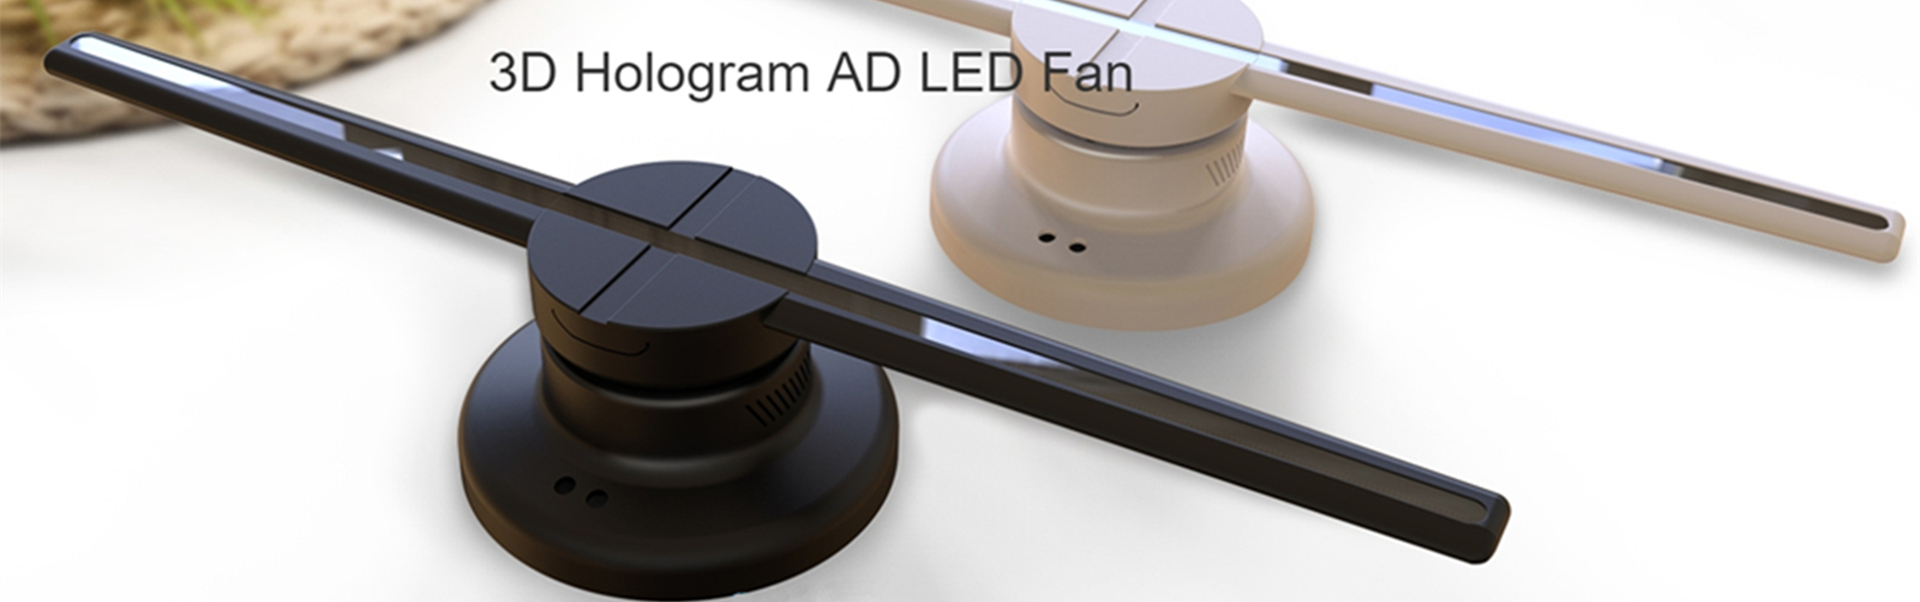 3D Hologram LED Fan Advertising Display | Supplier From China-